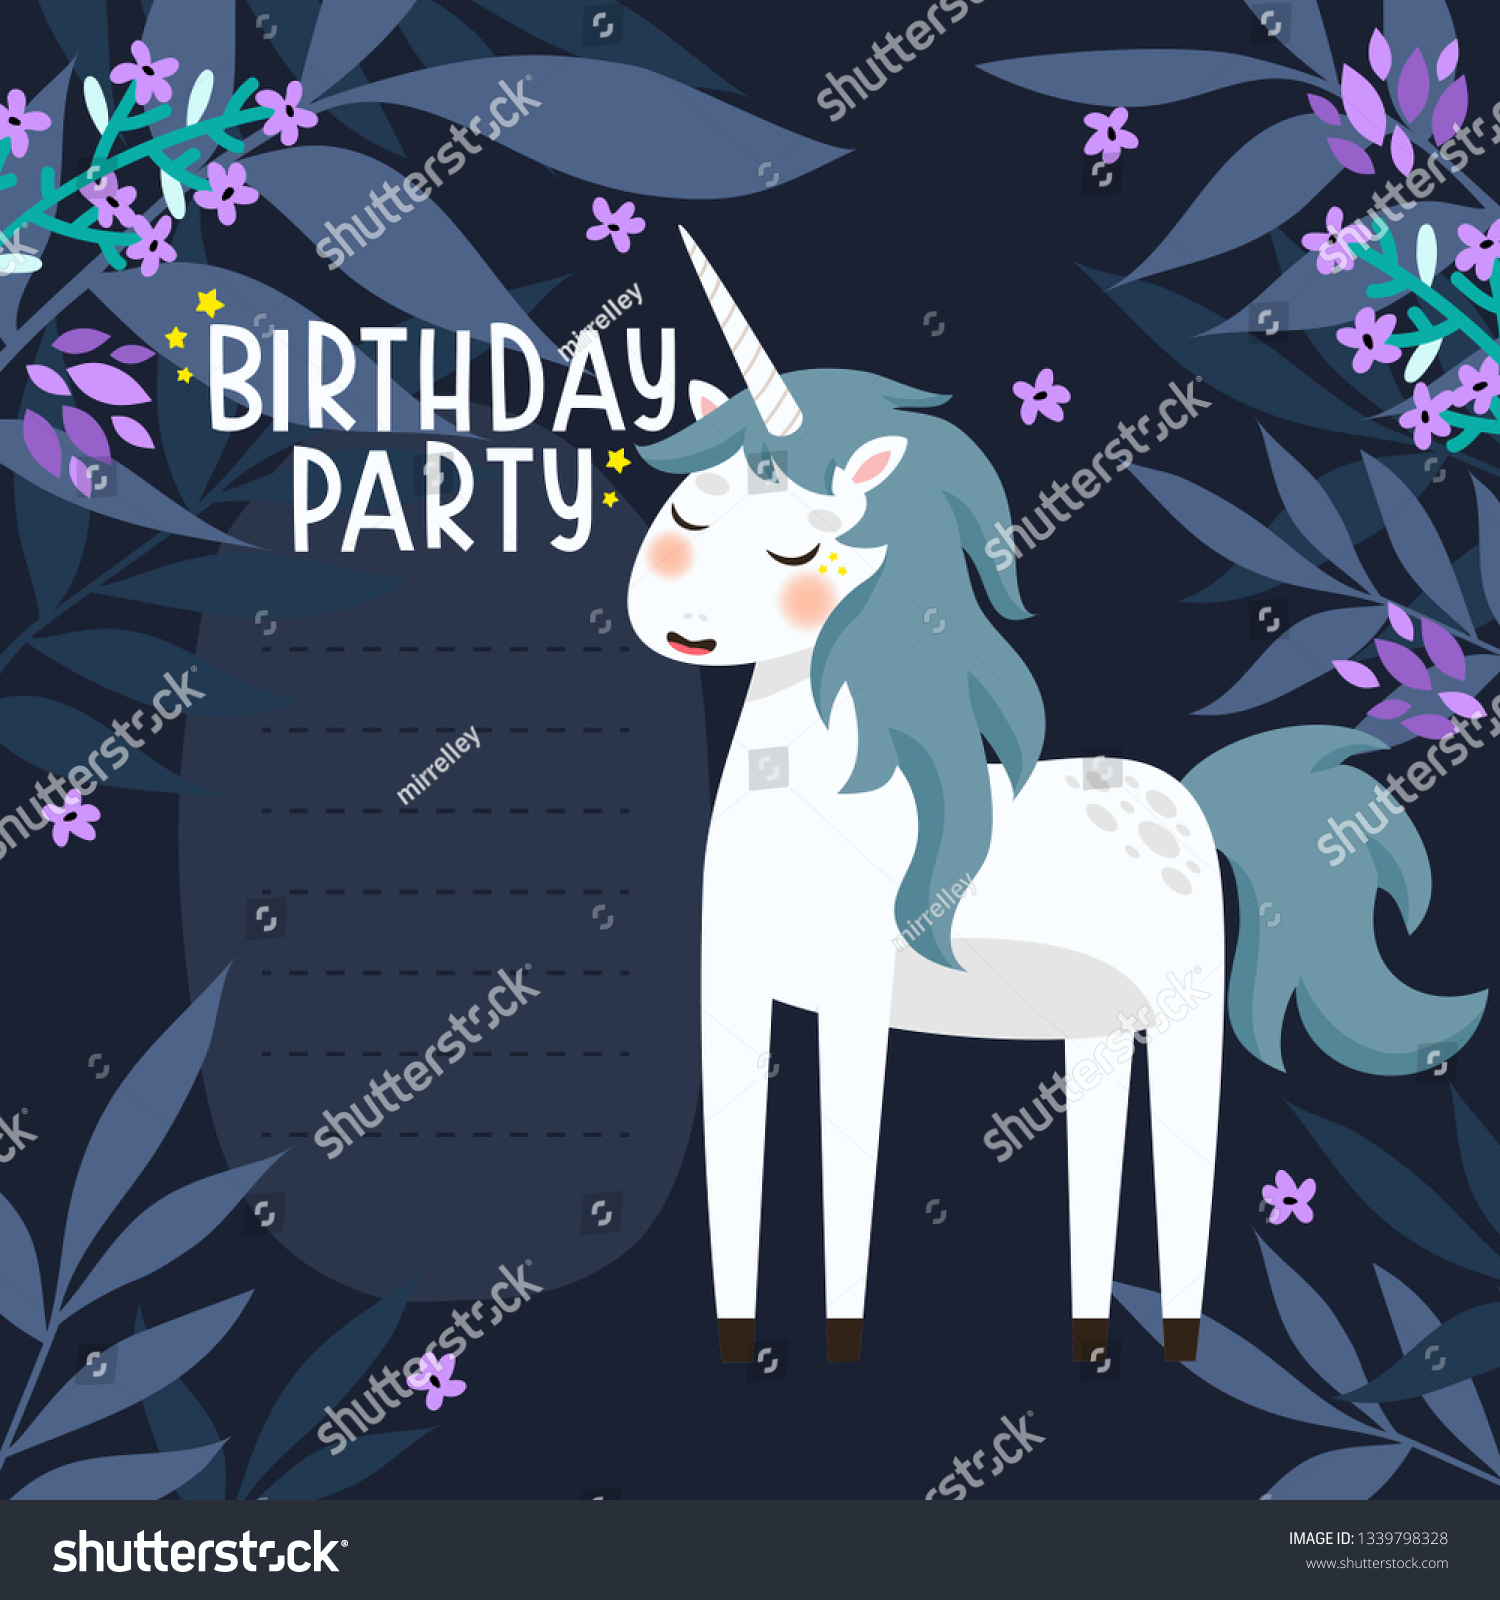 https www shutterstock com image vector birthday party invitation template cute cartoon 1339798328